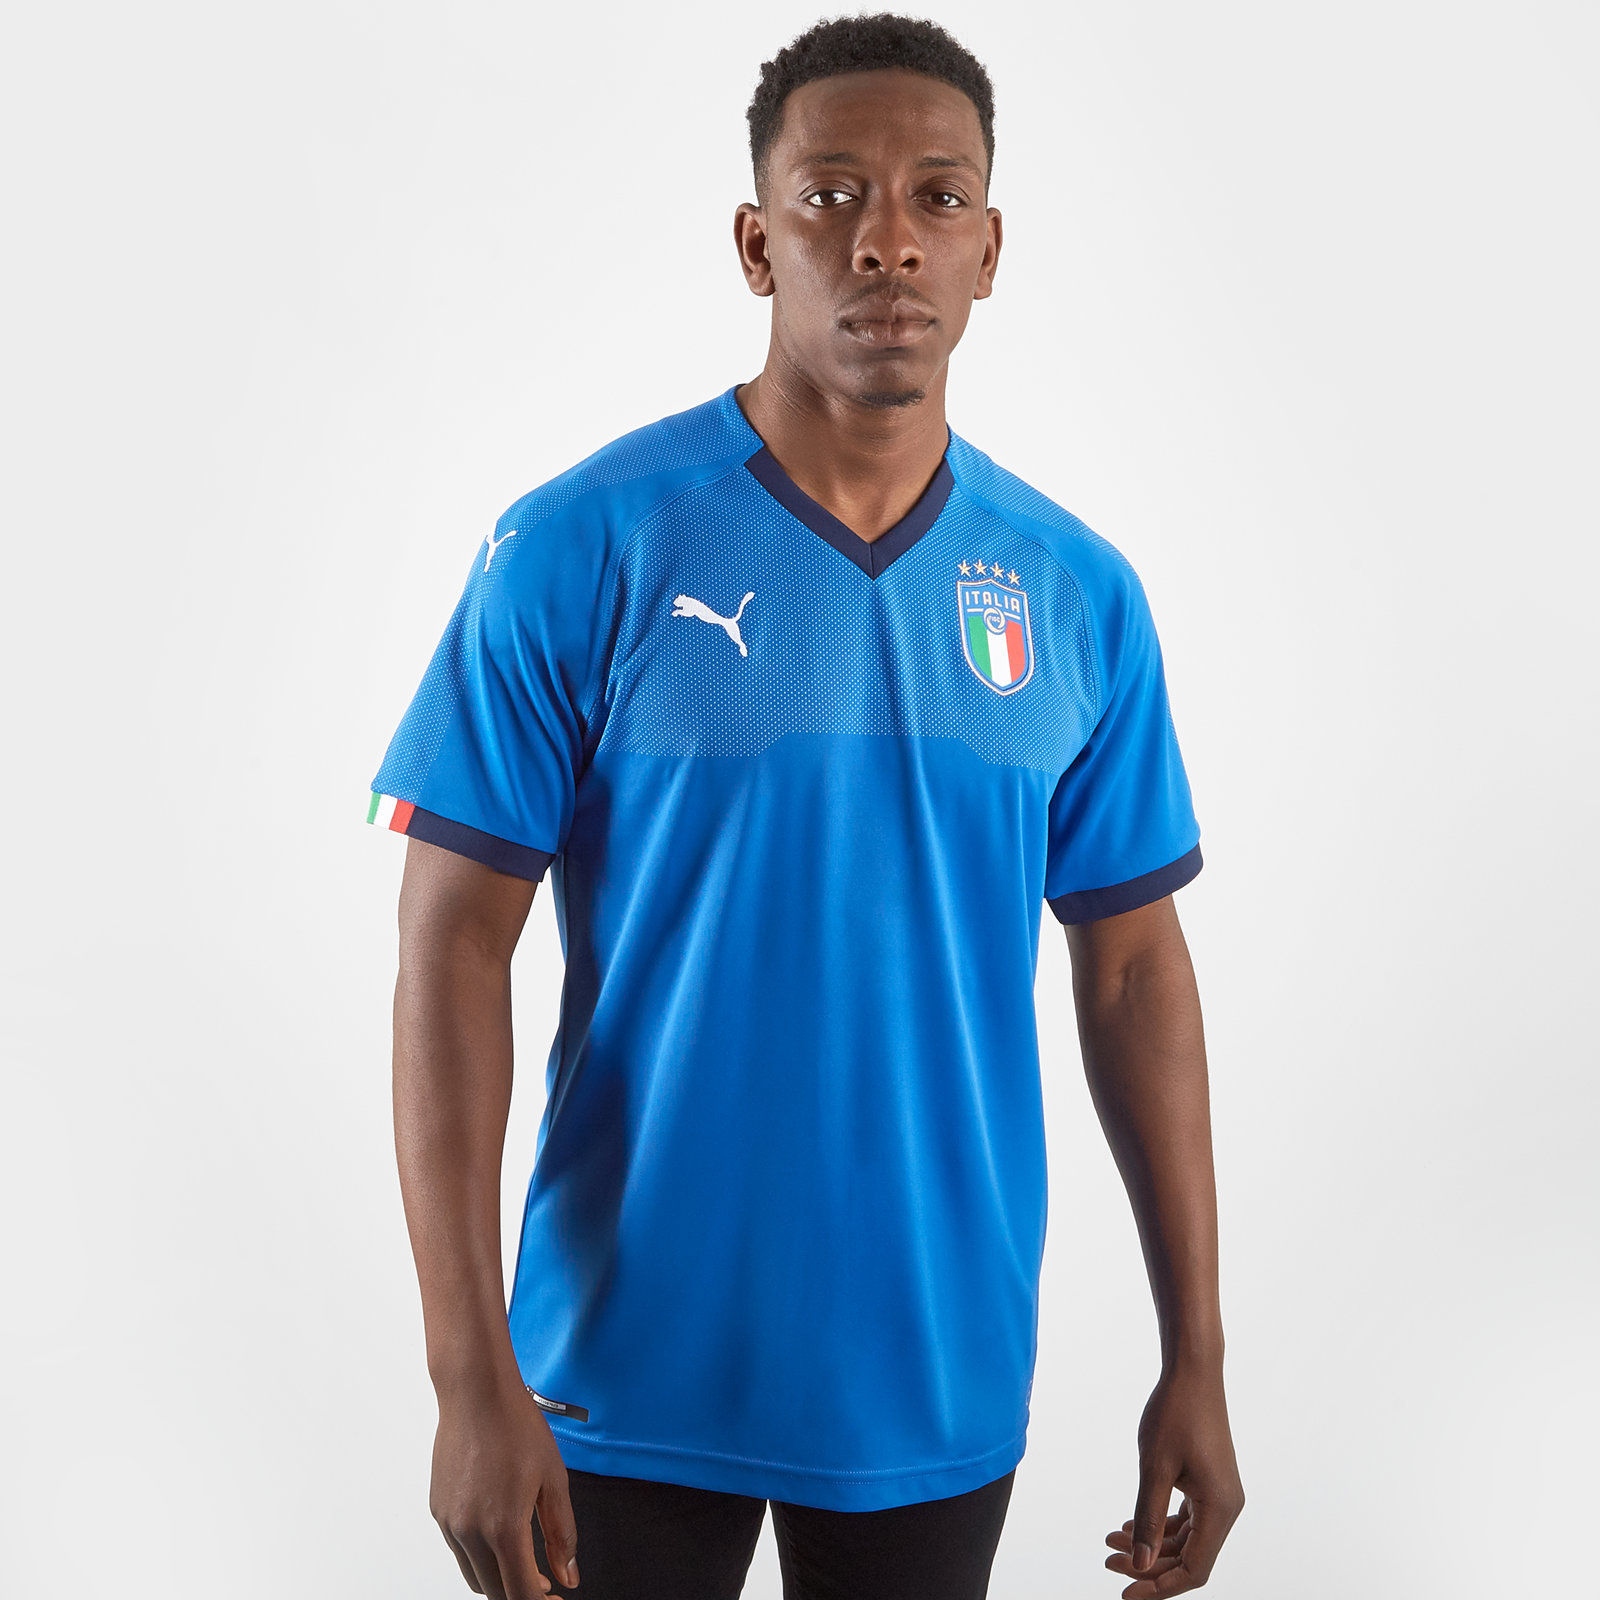 Italy 2018 Home short sleeve Replica Football Shirt